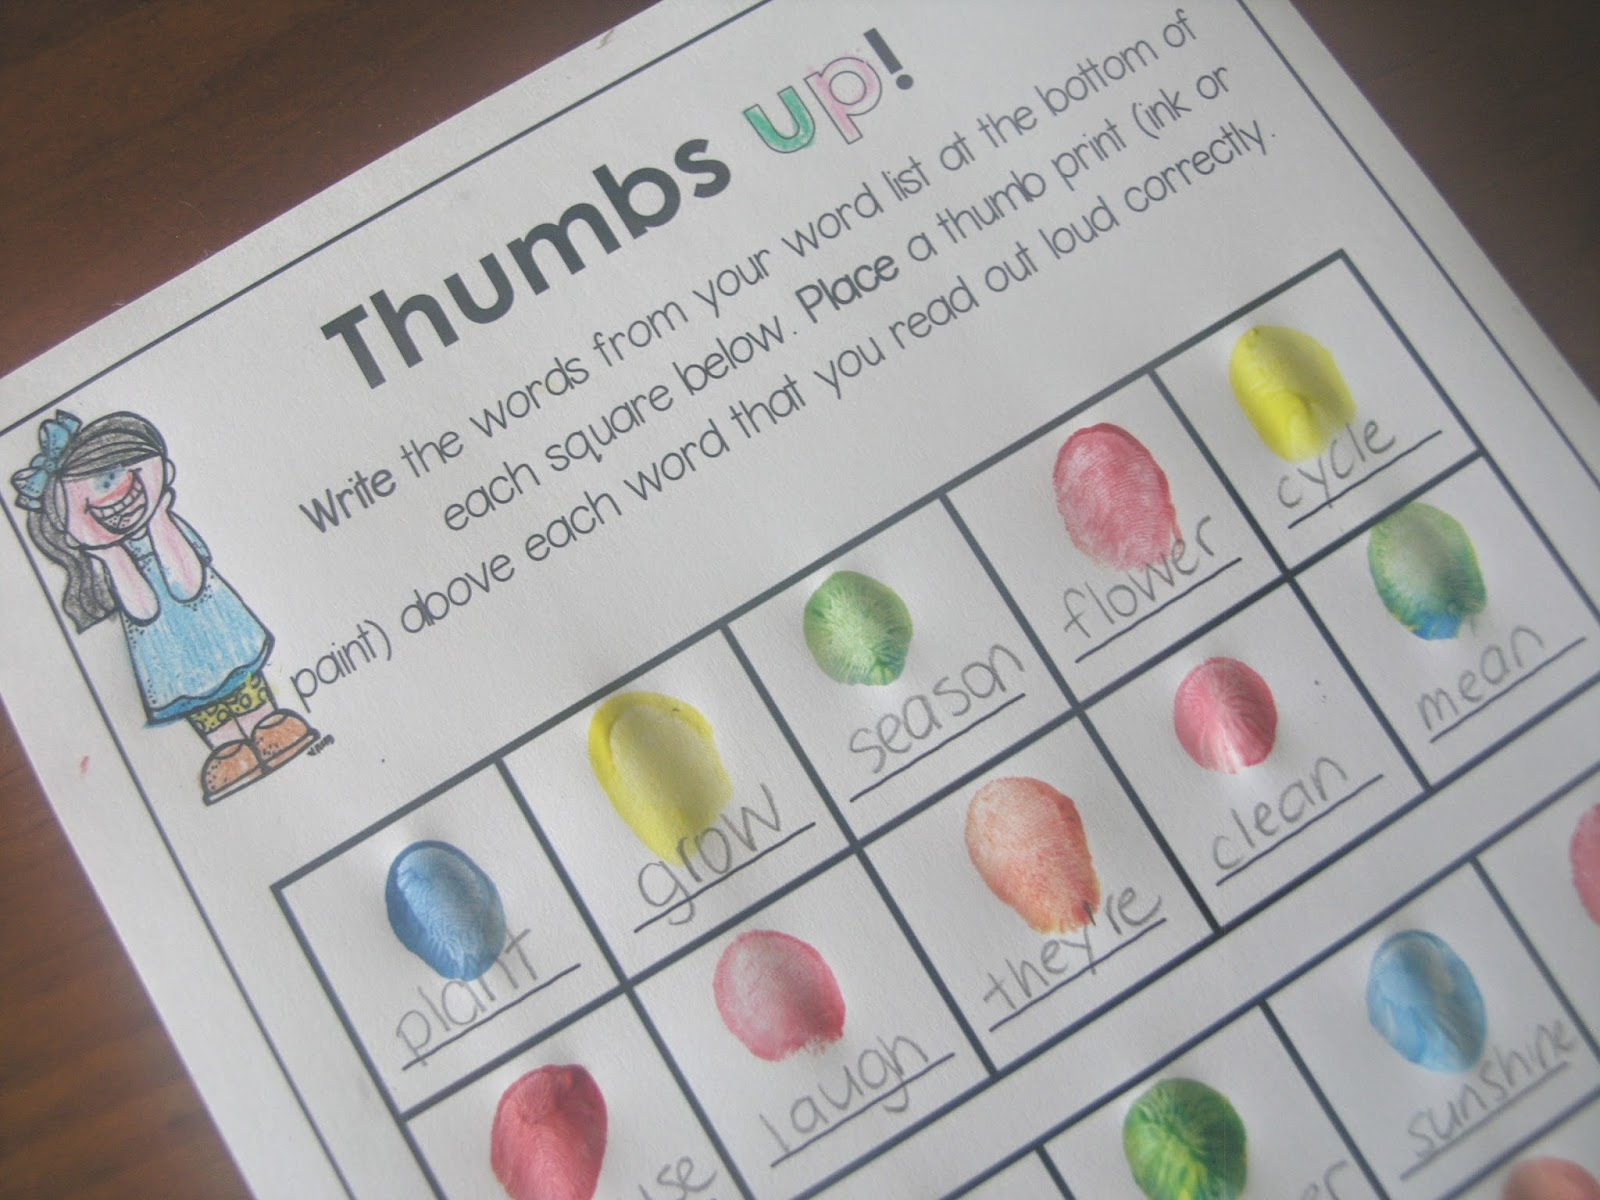 Thumbs up art page from Printables for any Word List file